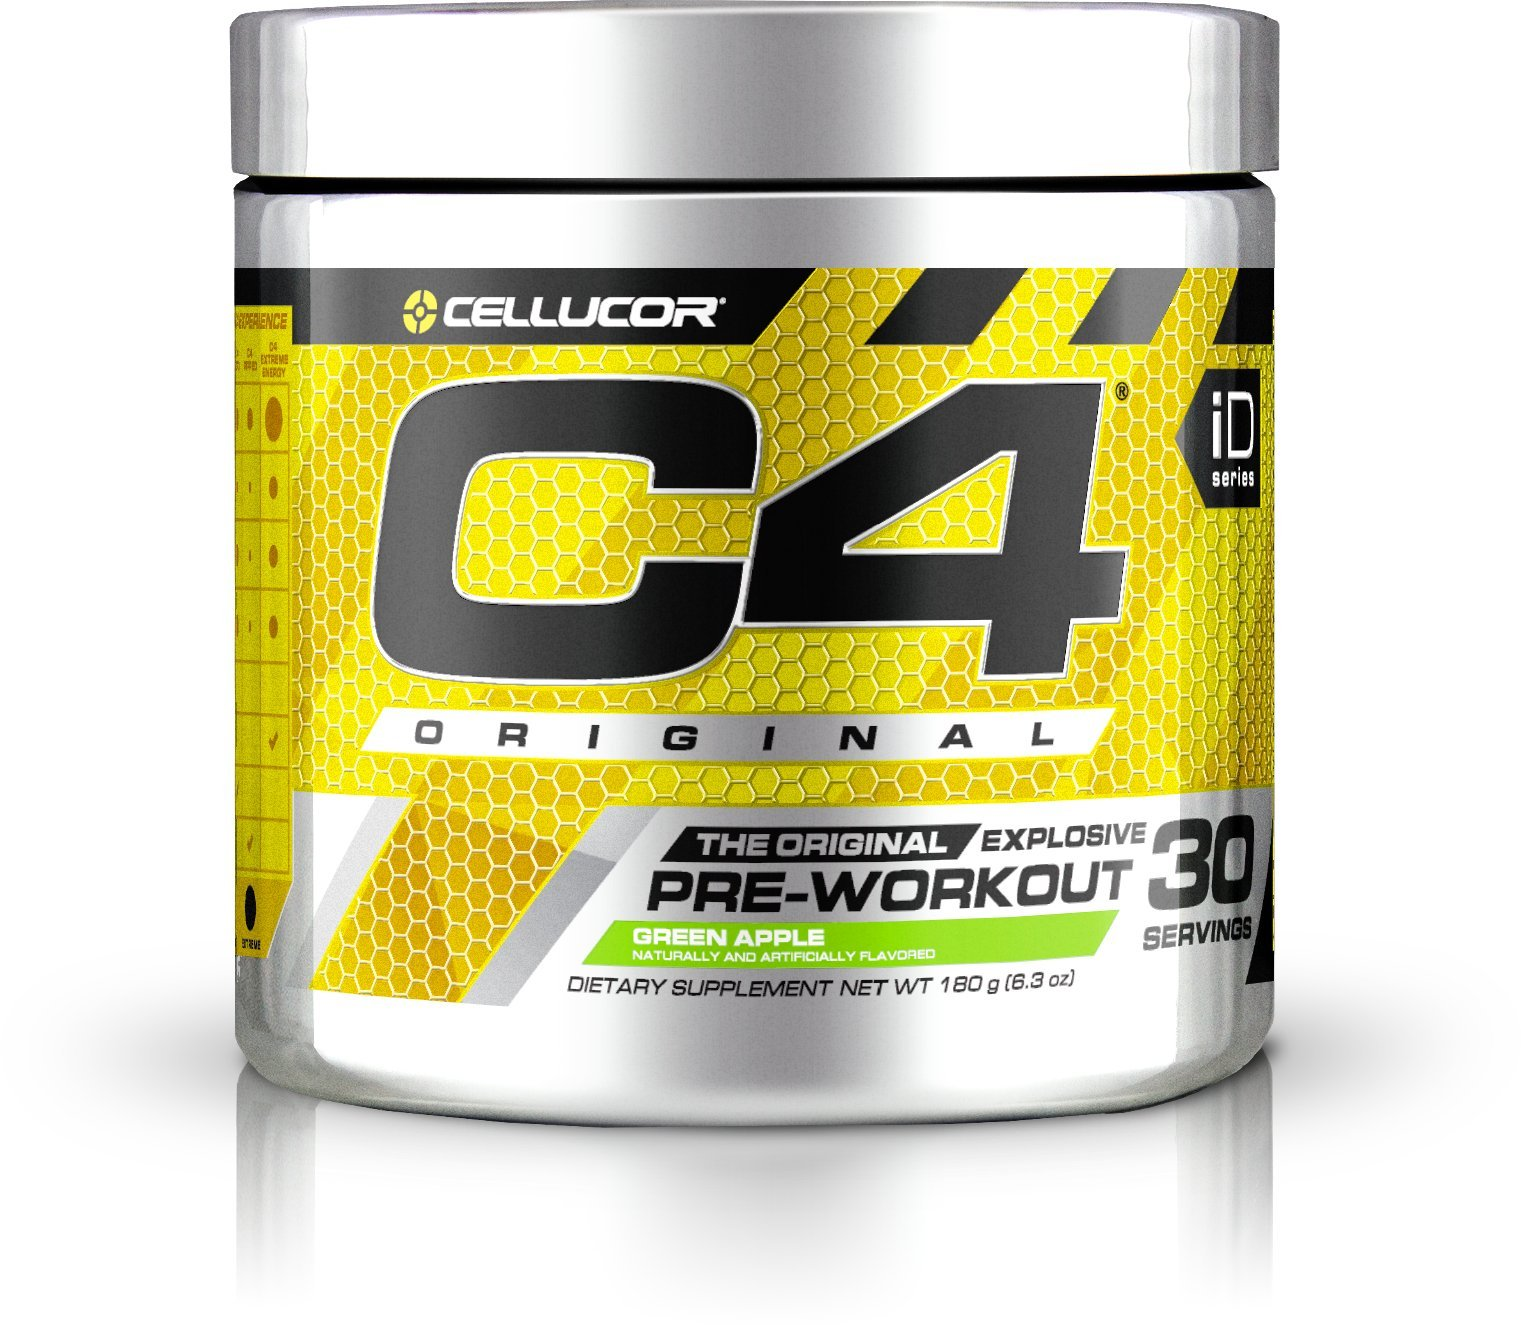 Cellucor C4 Original Pre Workout Powder Energy Drink w/ Creatine, Nitric Oxide & Beta Alanine, Green Apple, 30 Servings (6.3 ounces)